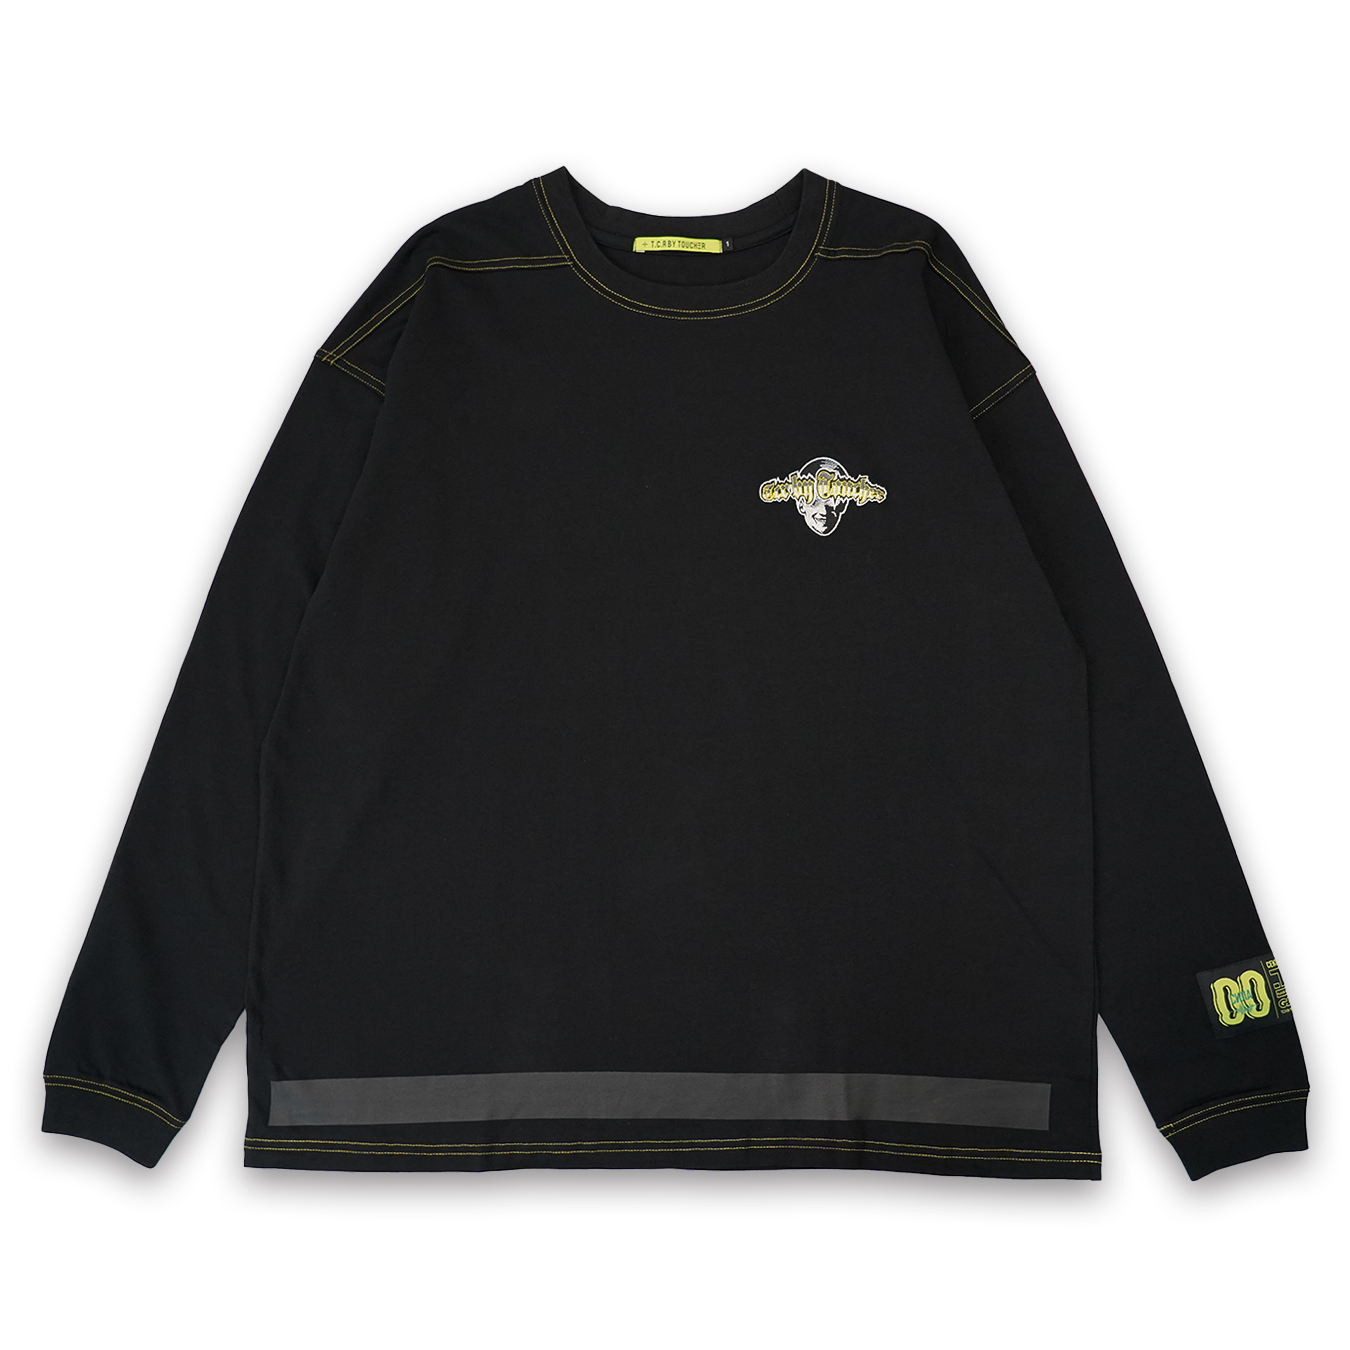 T.C.R EXTREME EMBROIDERY LOGO L/S TEE - BLACK